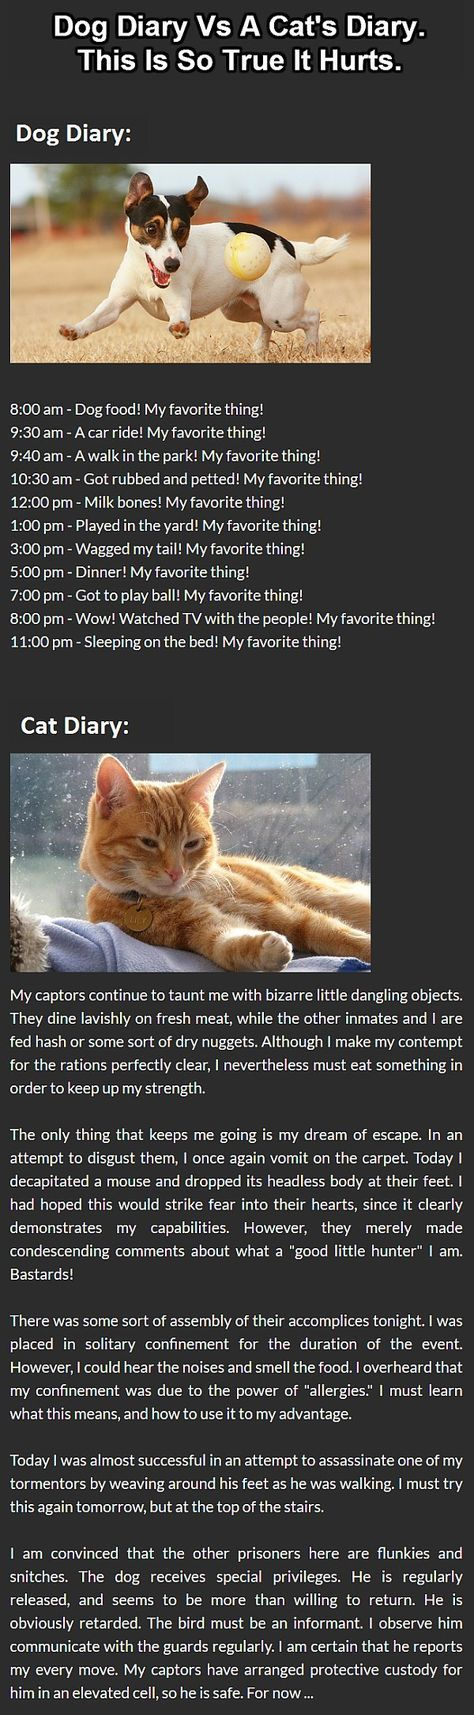 Cats Vs Dogs This Is The Best Diary Comparison Ever Cat Vs Dog